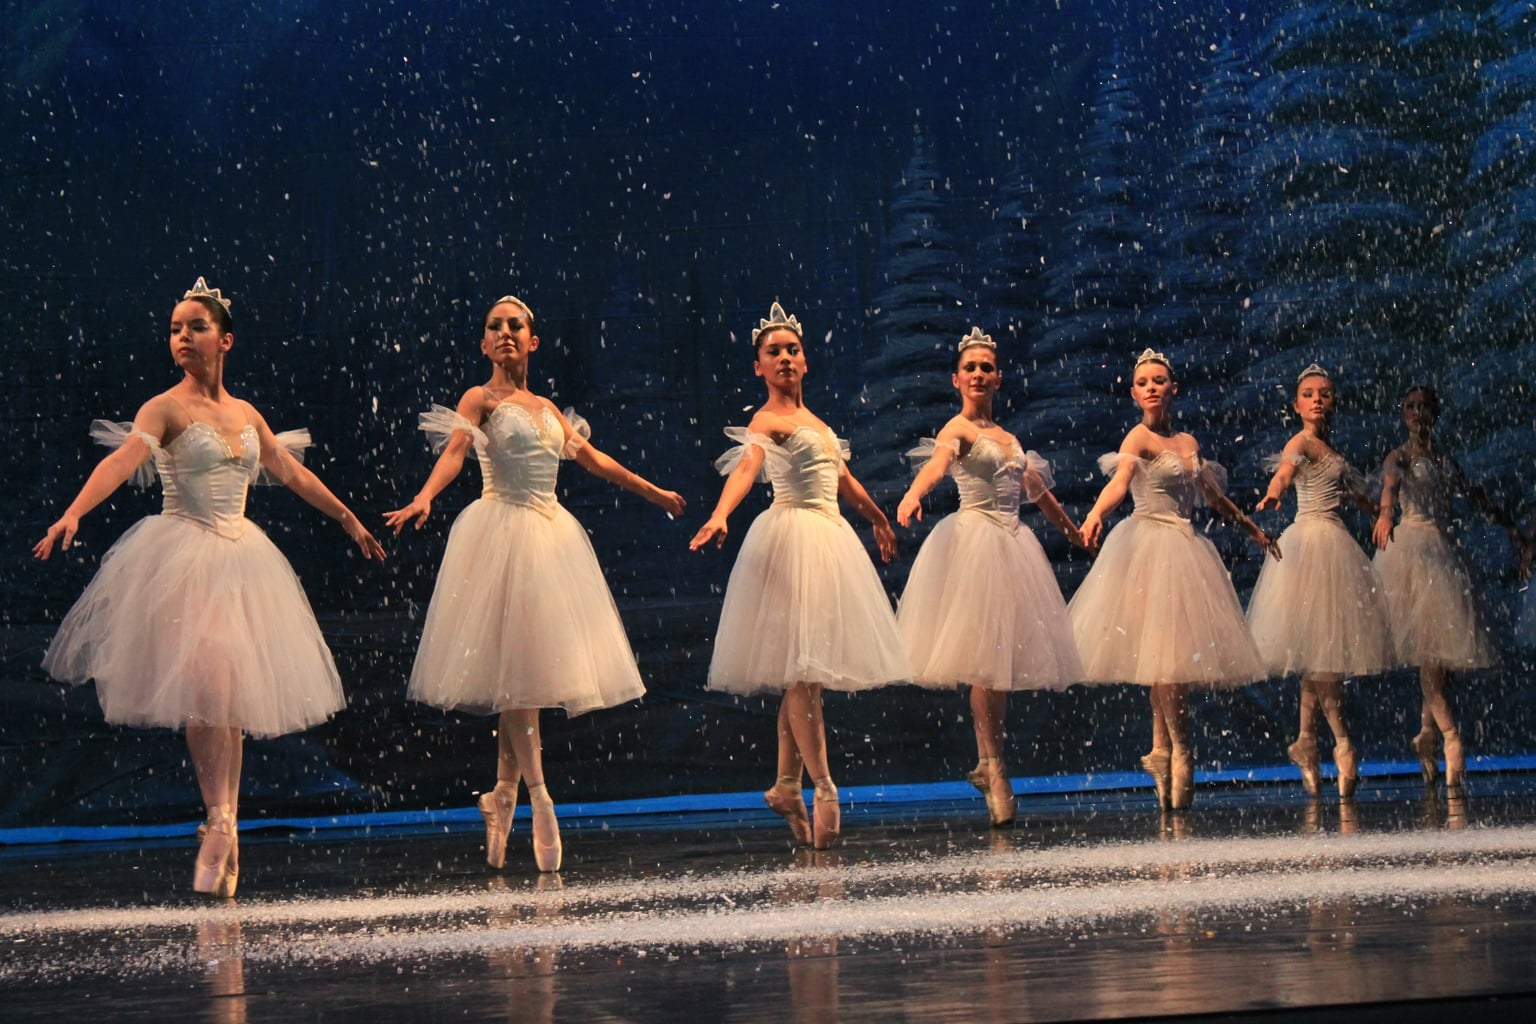 The Snowflakes dancing during the Nutcracker Ballet, with fake snow falling on them